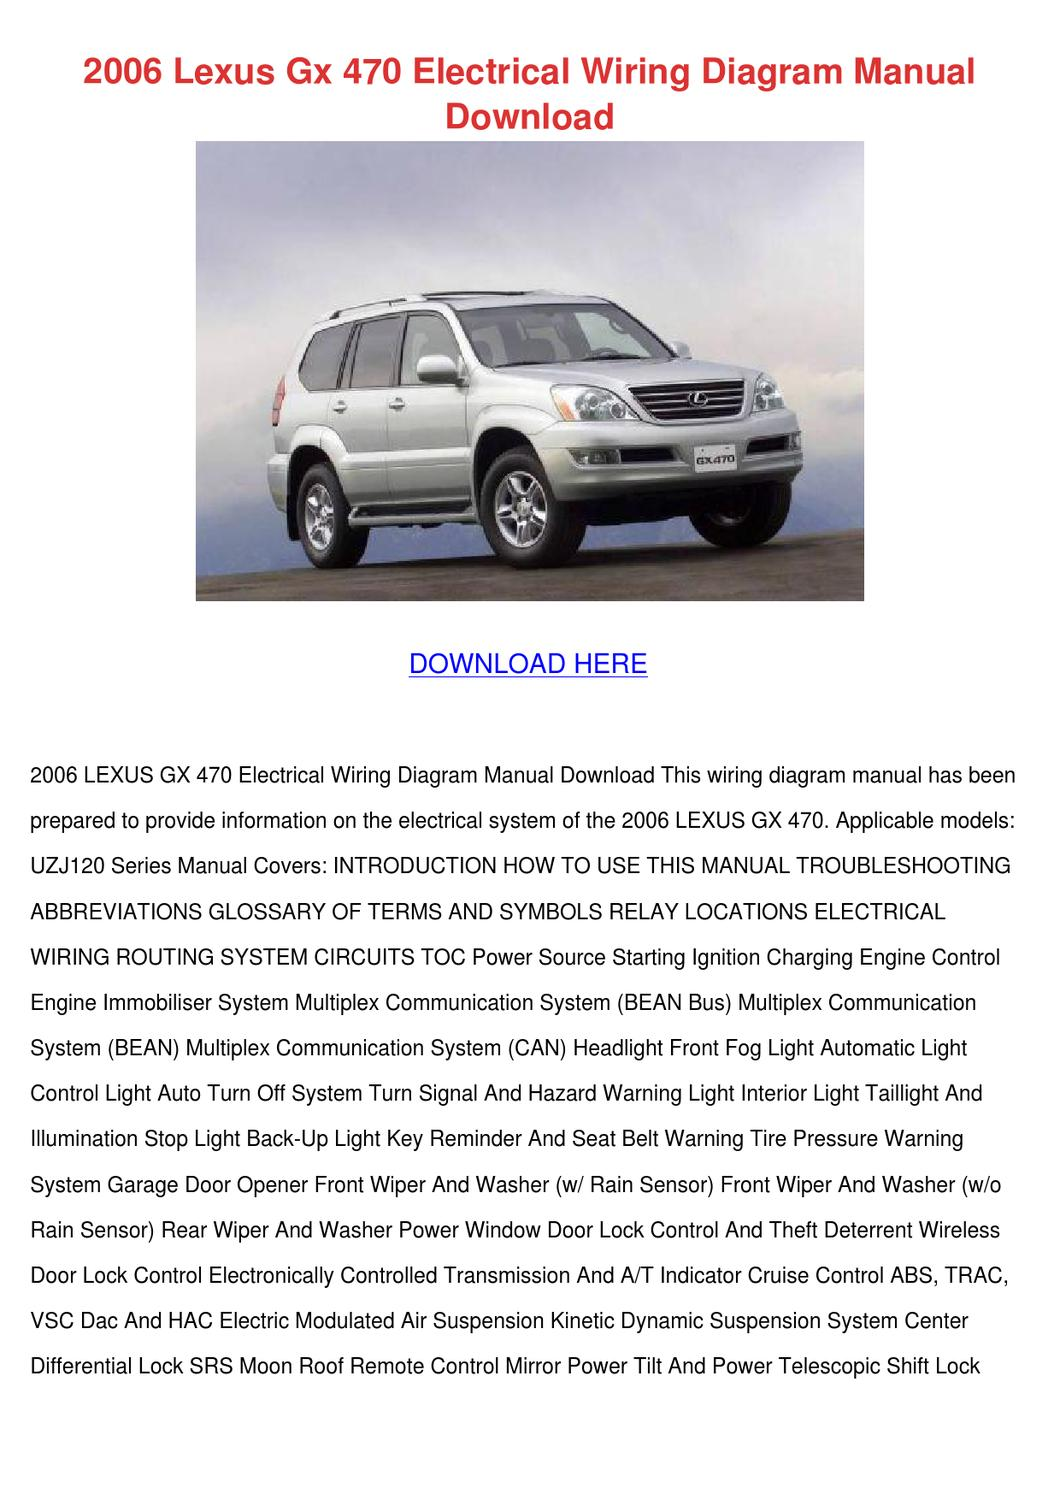 2006 Lexus Gx 470 Electrical Wiring Diagram M By Meaganjewett Issuu Toyota 4runner Power Mirror Switch